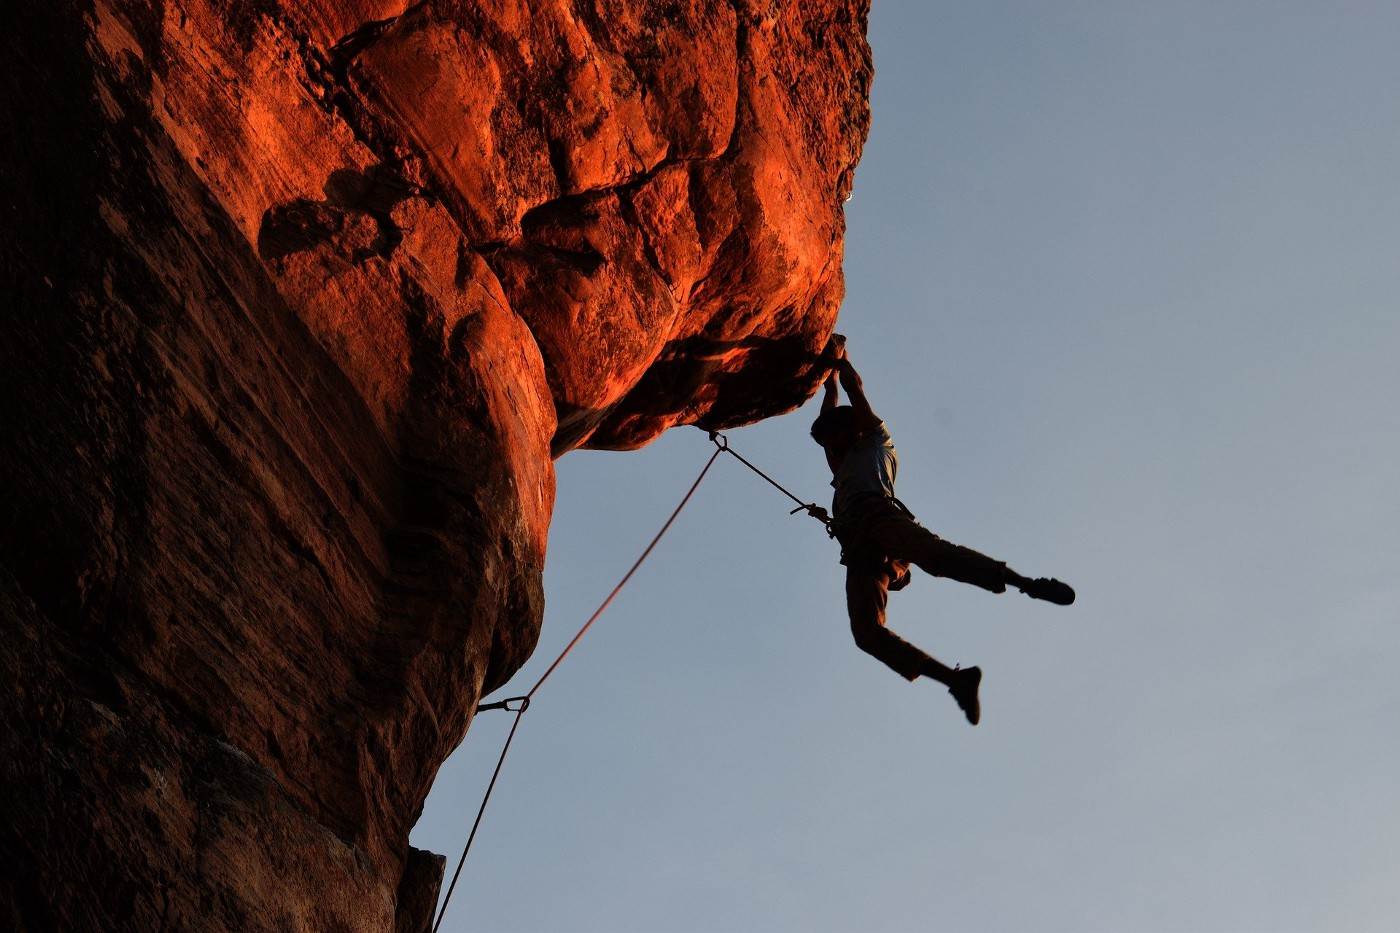 Person climbing with a rope